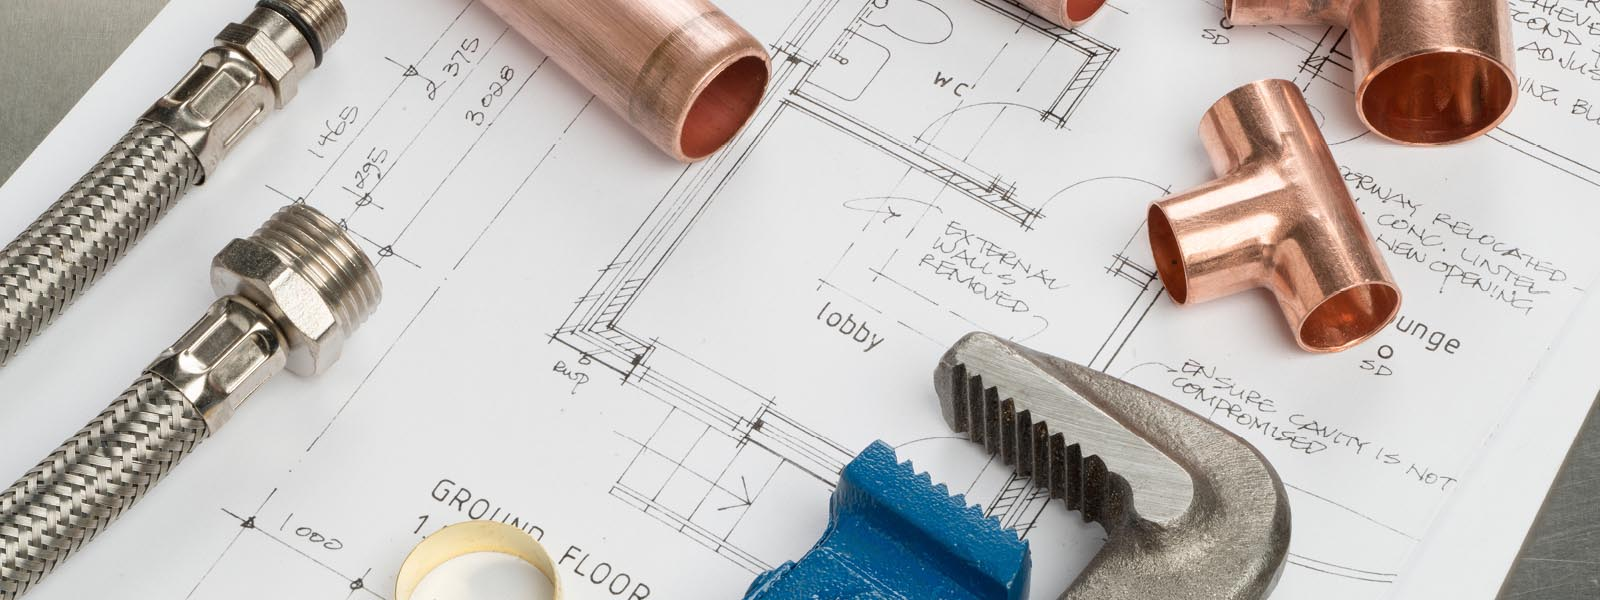 Plumbing plans and tools web